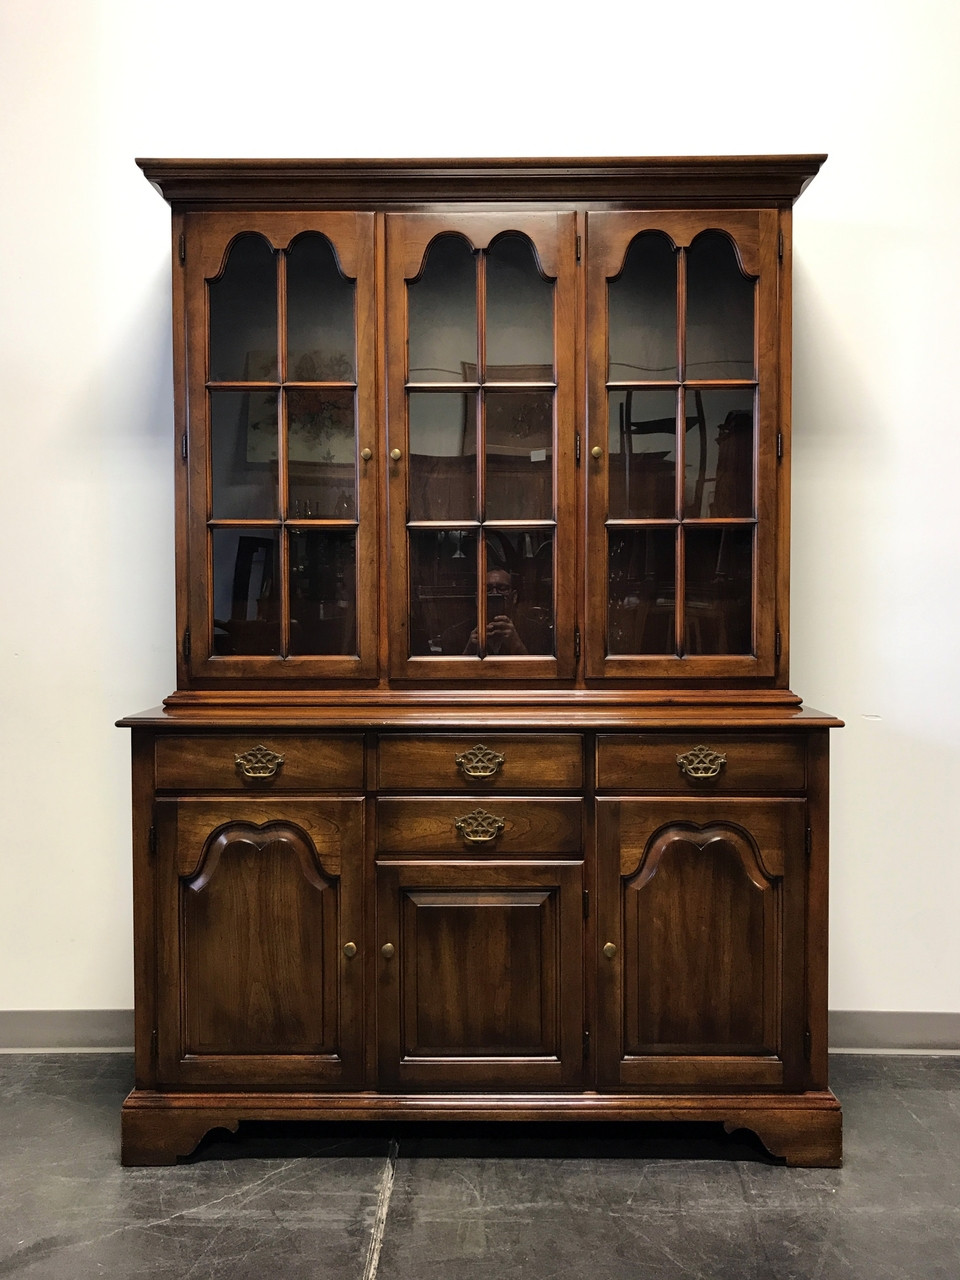 Sold Out Statton Oxford Antique Cherry China Cabinet